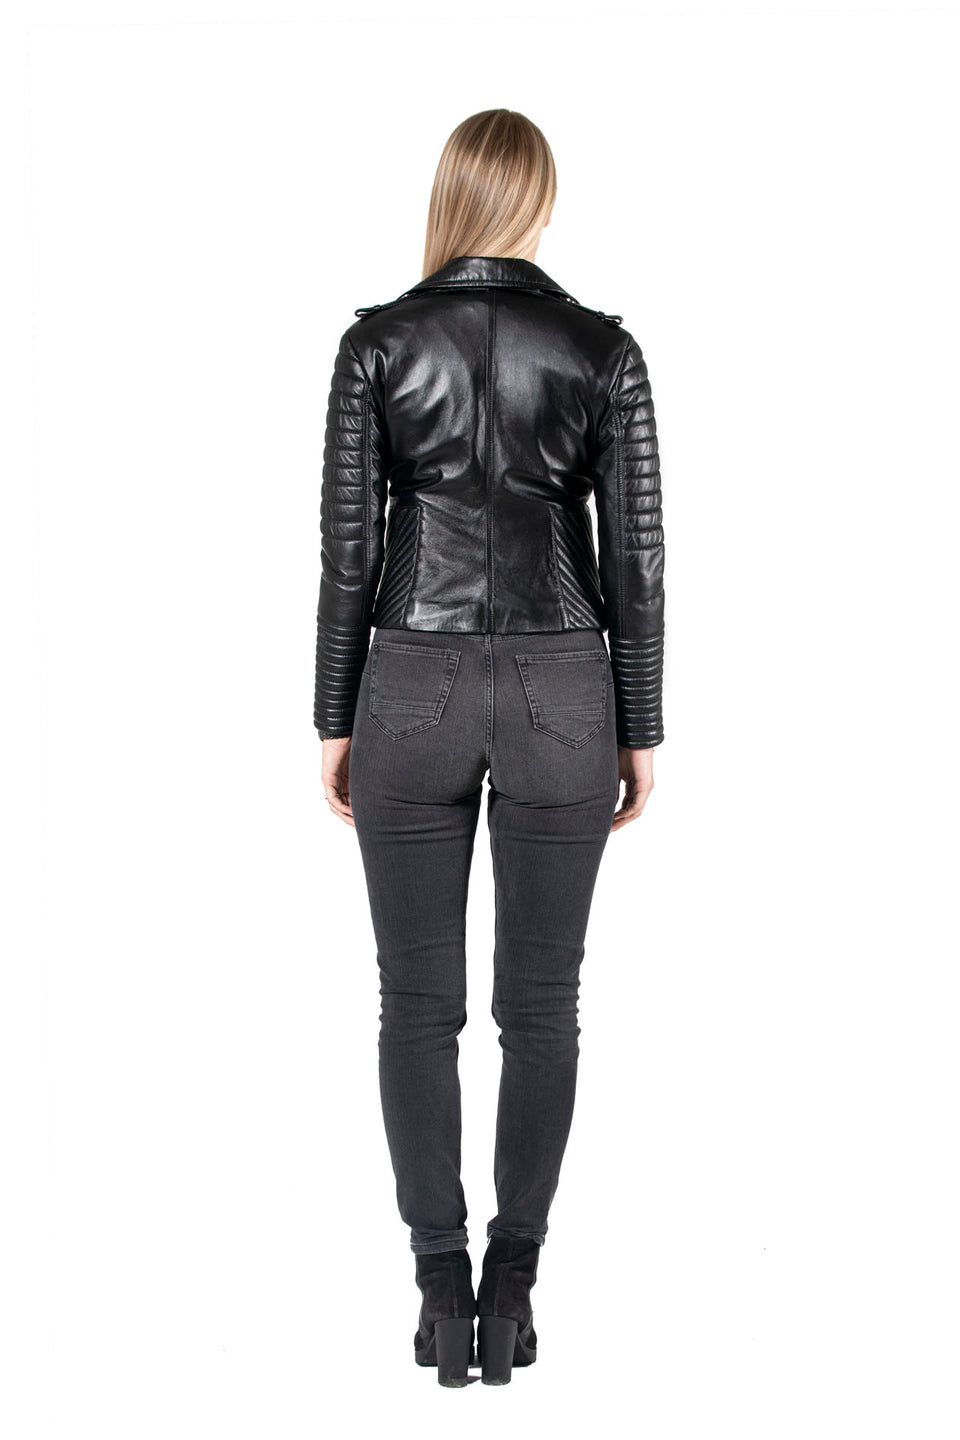 Case - Black Soft Nappa Leather Jacket For Women's